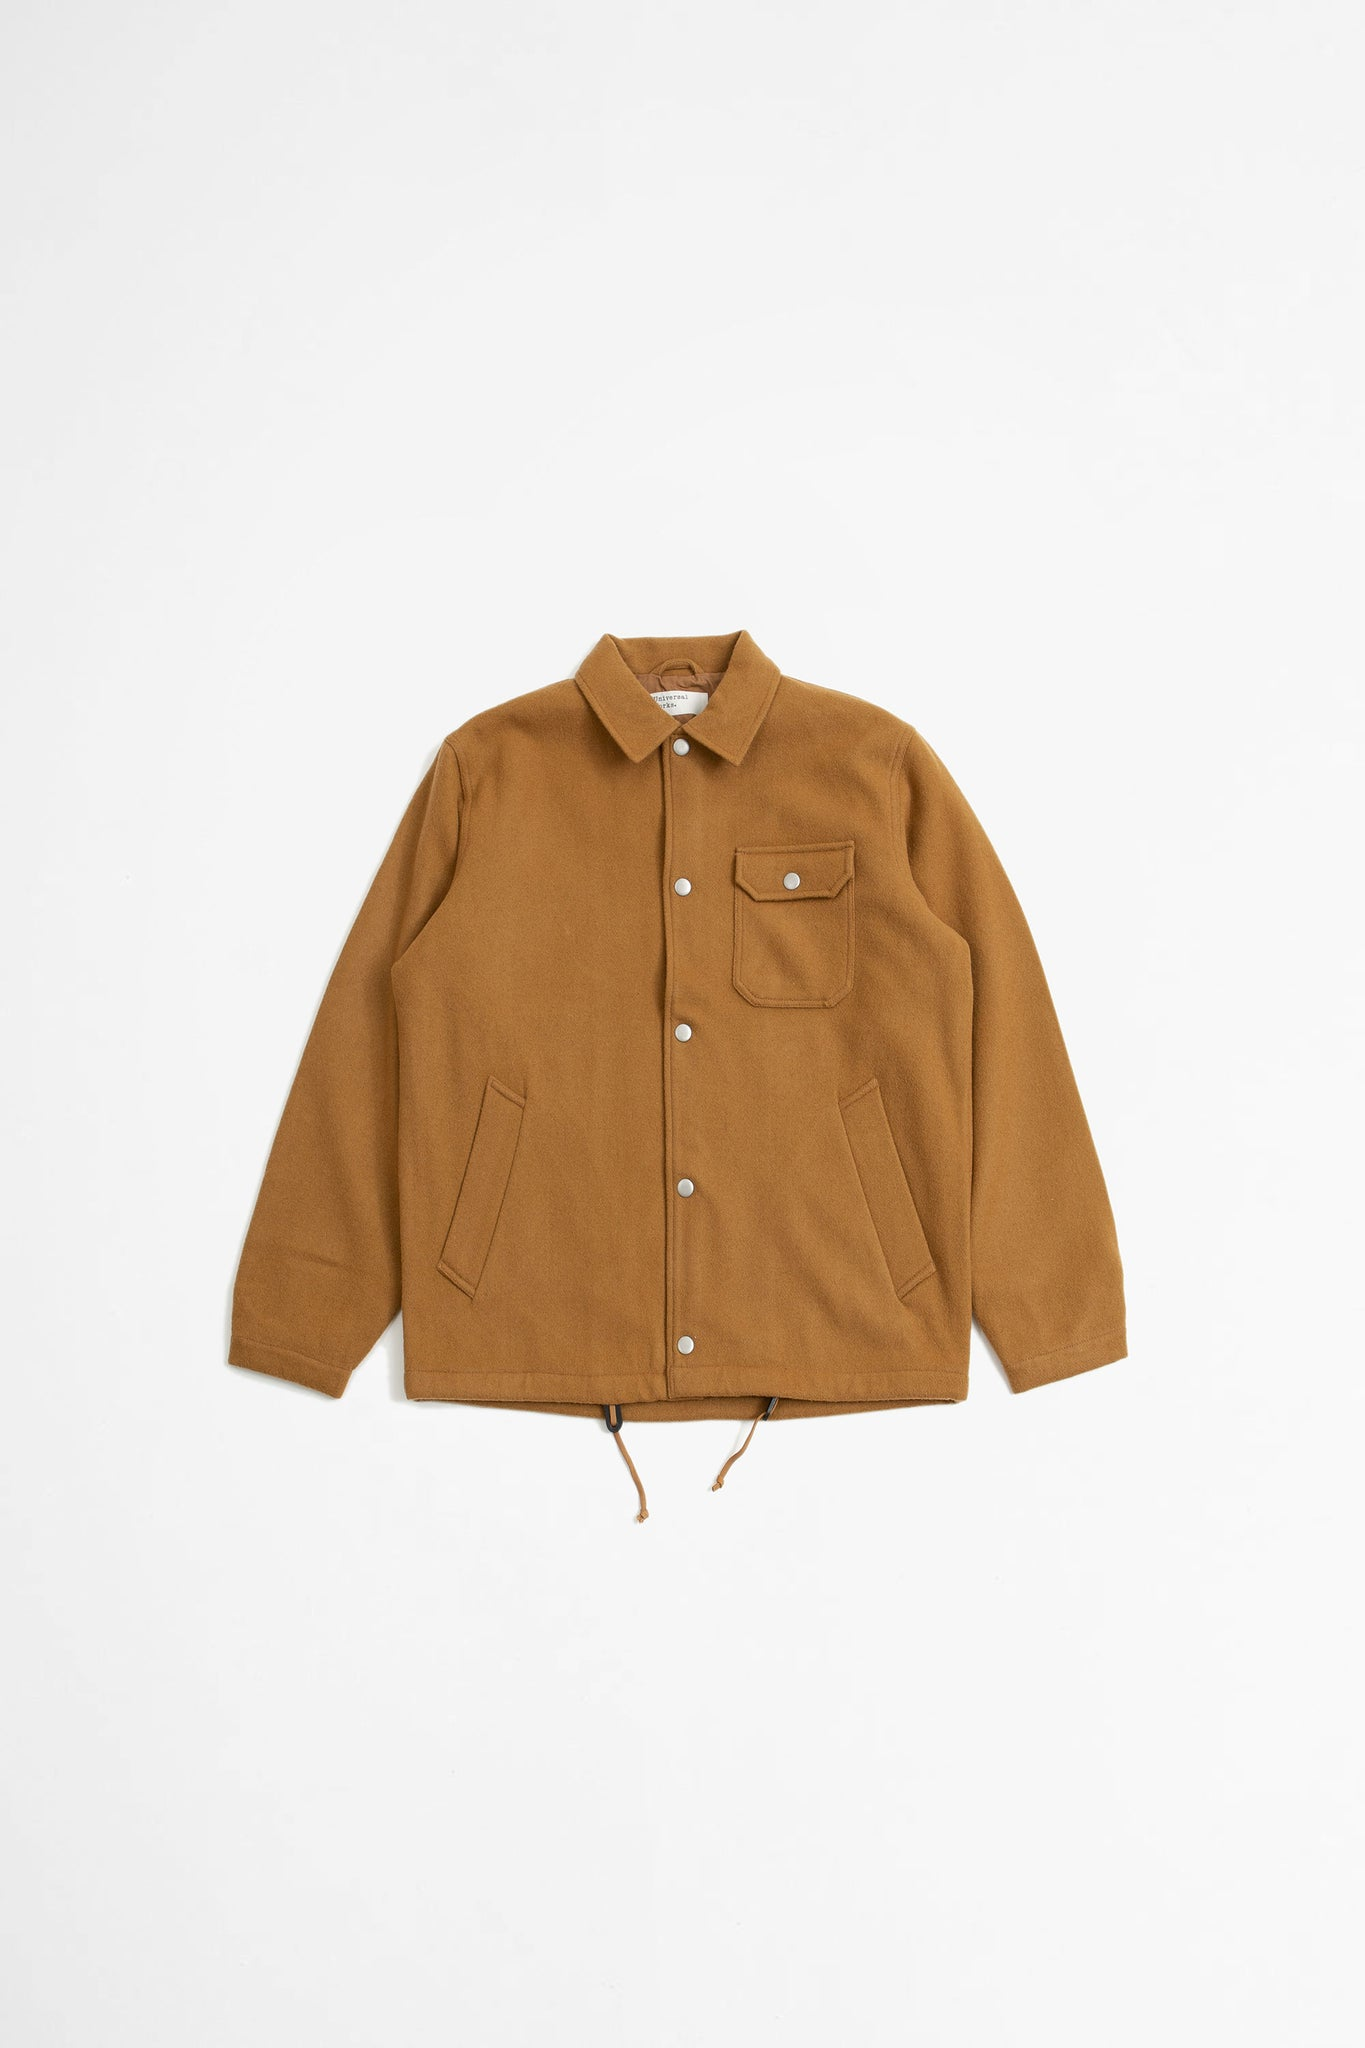 Coach jacket in caramel mowbray